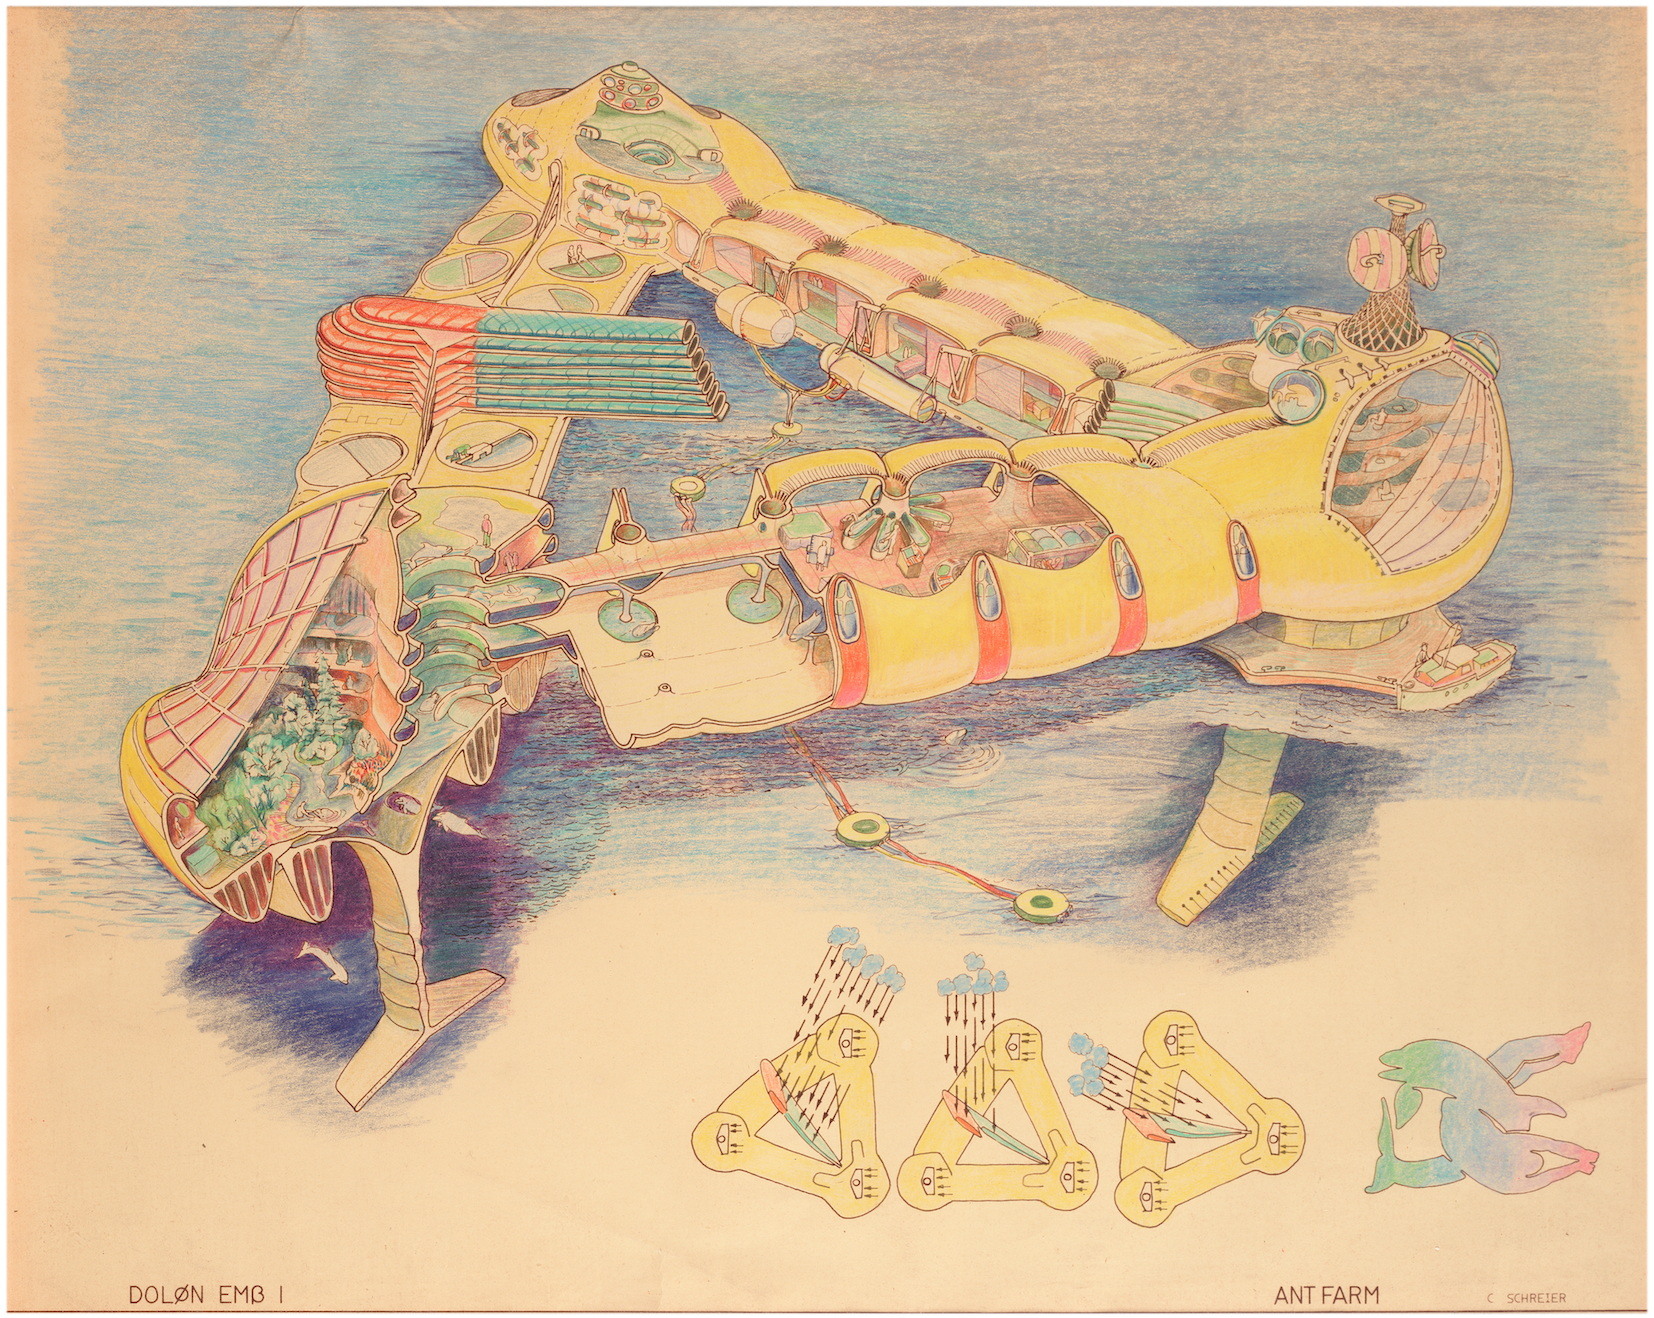 Fig. 1. Ant Farm's original  Dolphin Embassy , conceived for the 1973 exhibition  2020 Vision  (Contemporary Arts Museum Houston), also referred to as the 'RV John Lilly' to distinguish it from later iterations. Ant Farm, DOLON EMB 1 (Drawing by Curtis Schreier). 1975, hand colored brownline, 18x22 in. Berkeley Art Museum & Pacific Film Archive, 2005.14.66.